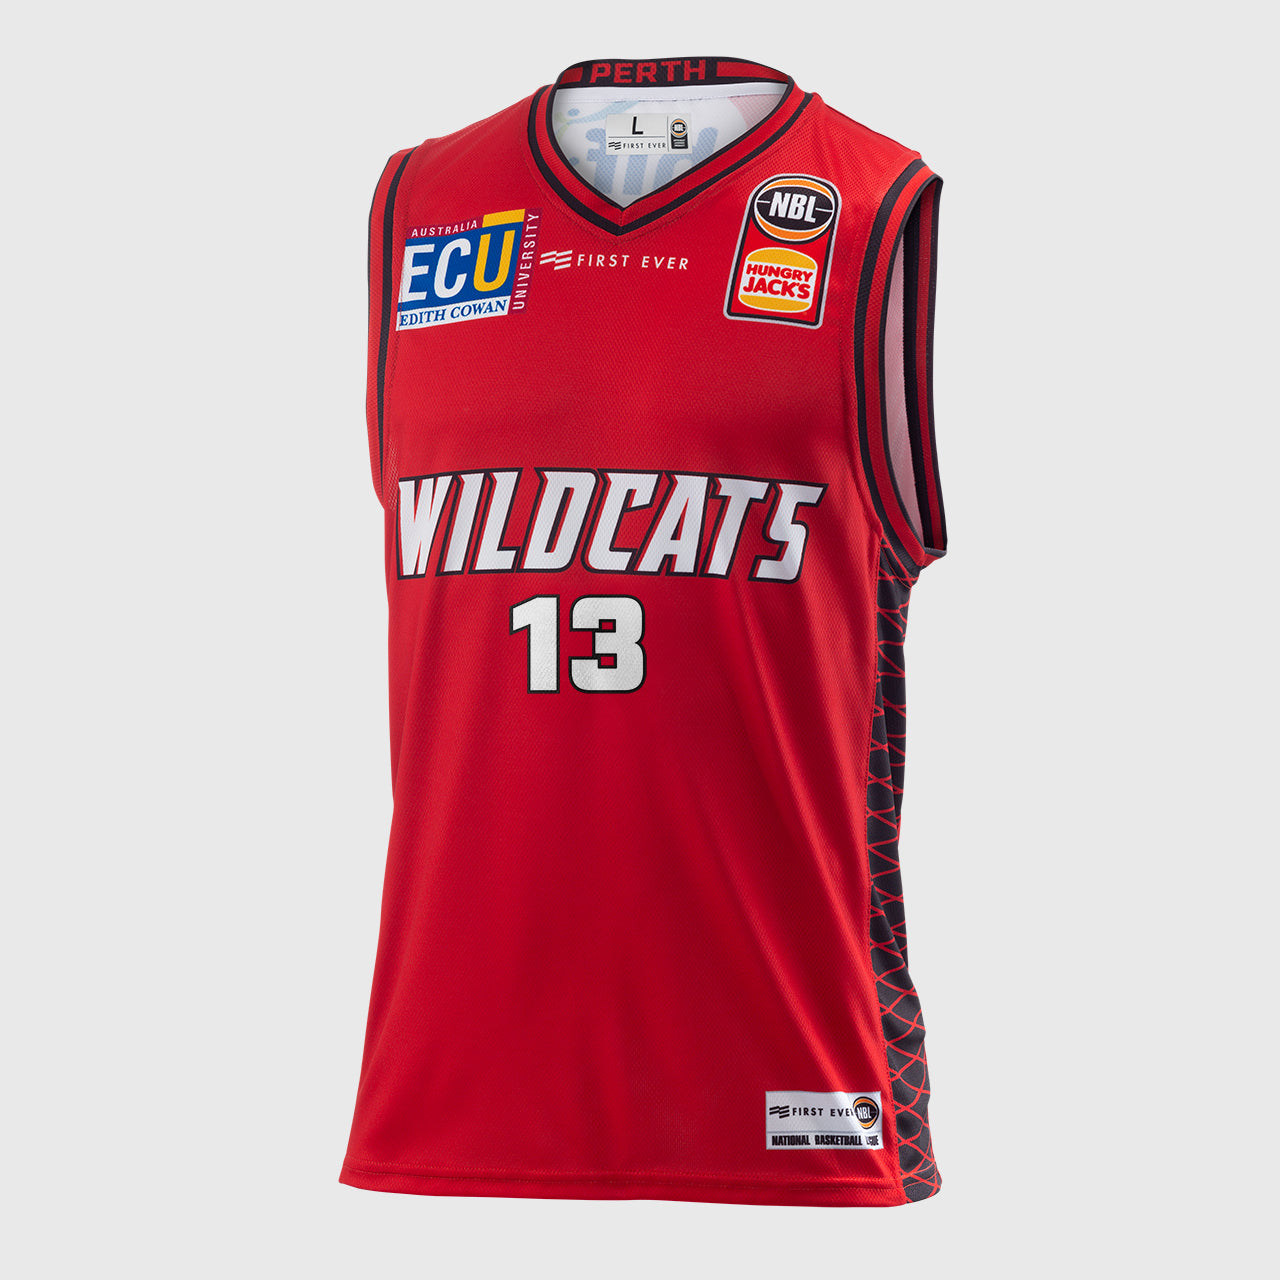 Perth Wildcats 18/19 Authentic Jersey - Tom Jervis